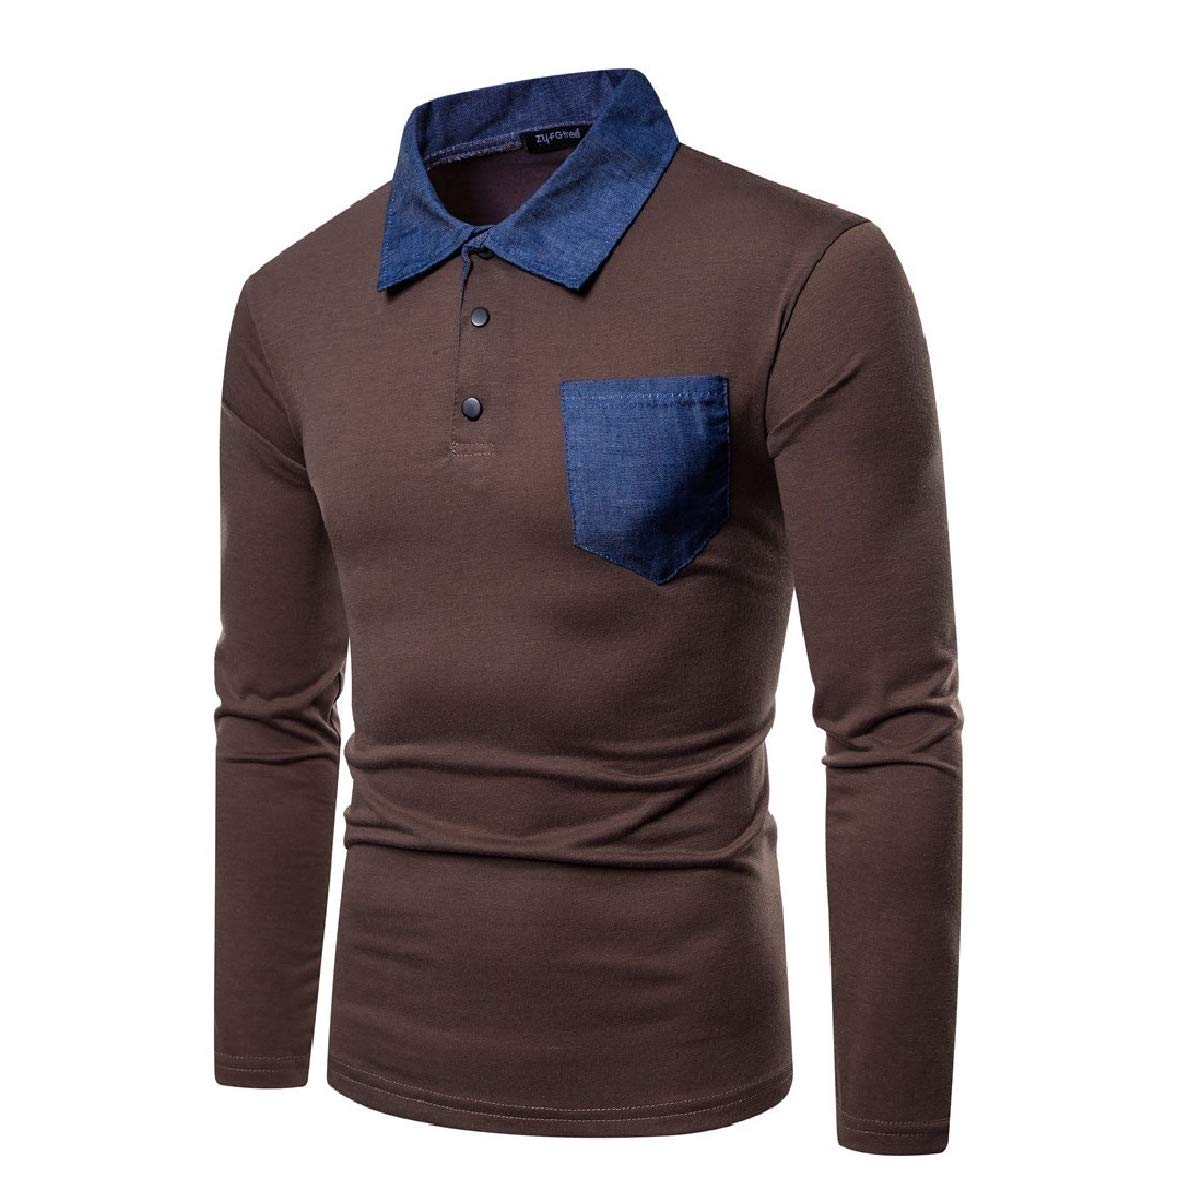 Abetteric Mens Autumn Lapel Polo Shirts Stitching Causal Long-Sleeve Tees Top